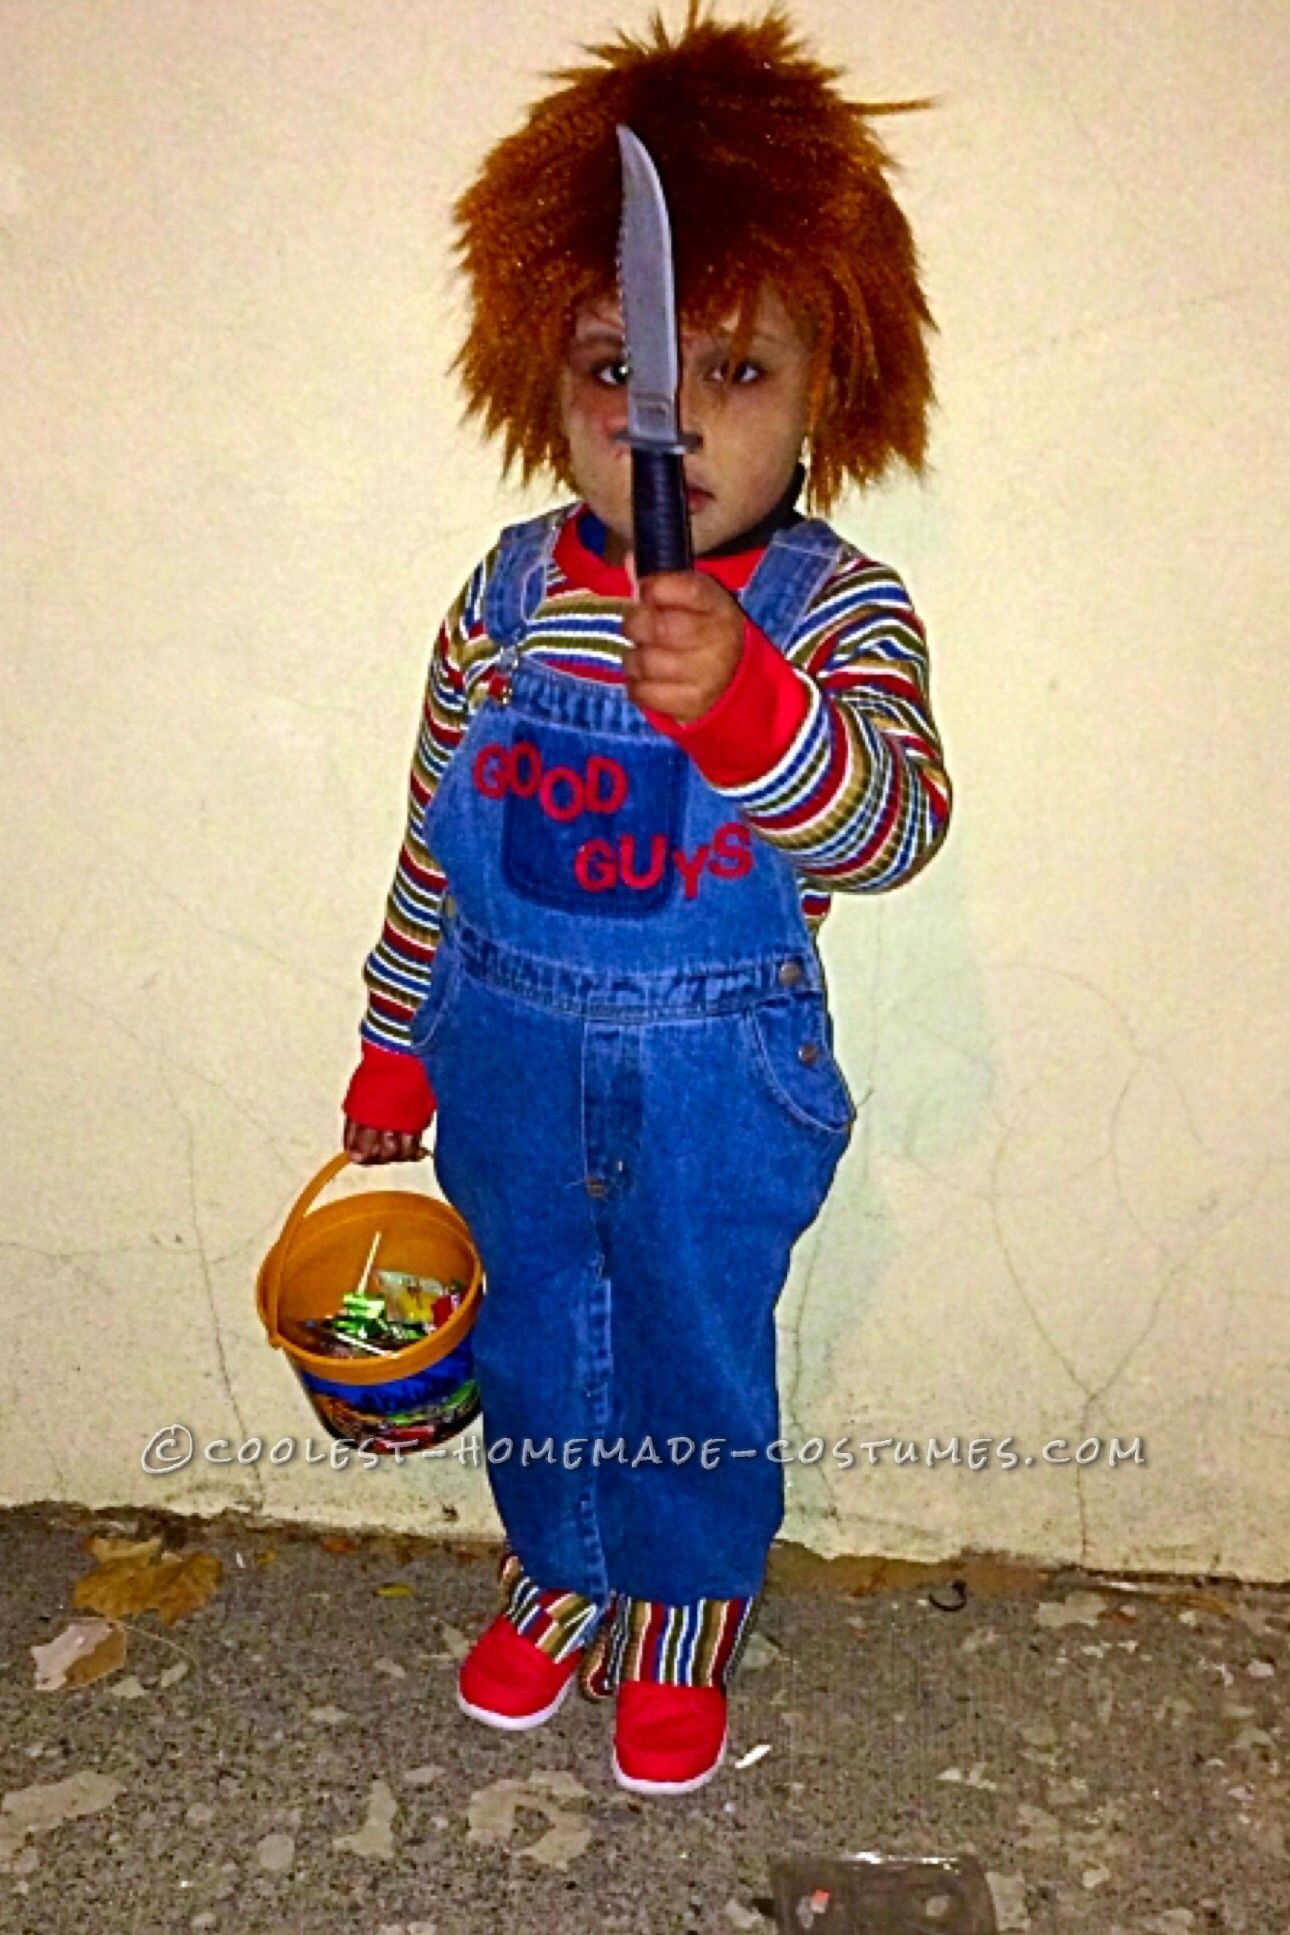 Cool Chucky Homemade Toddler Costume & Cool Chucky Homemade Toddler Costume   Homemade toddler costumes ...